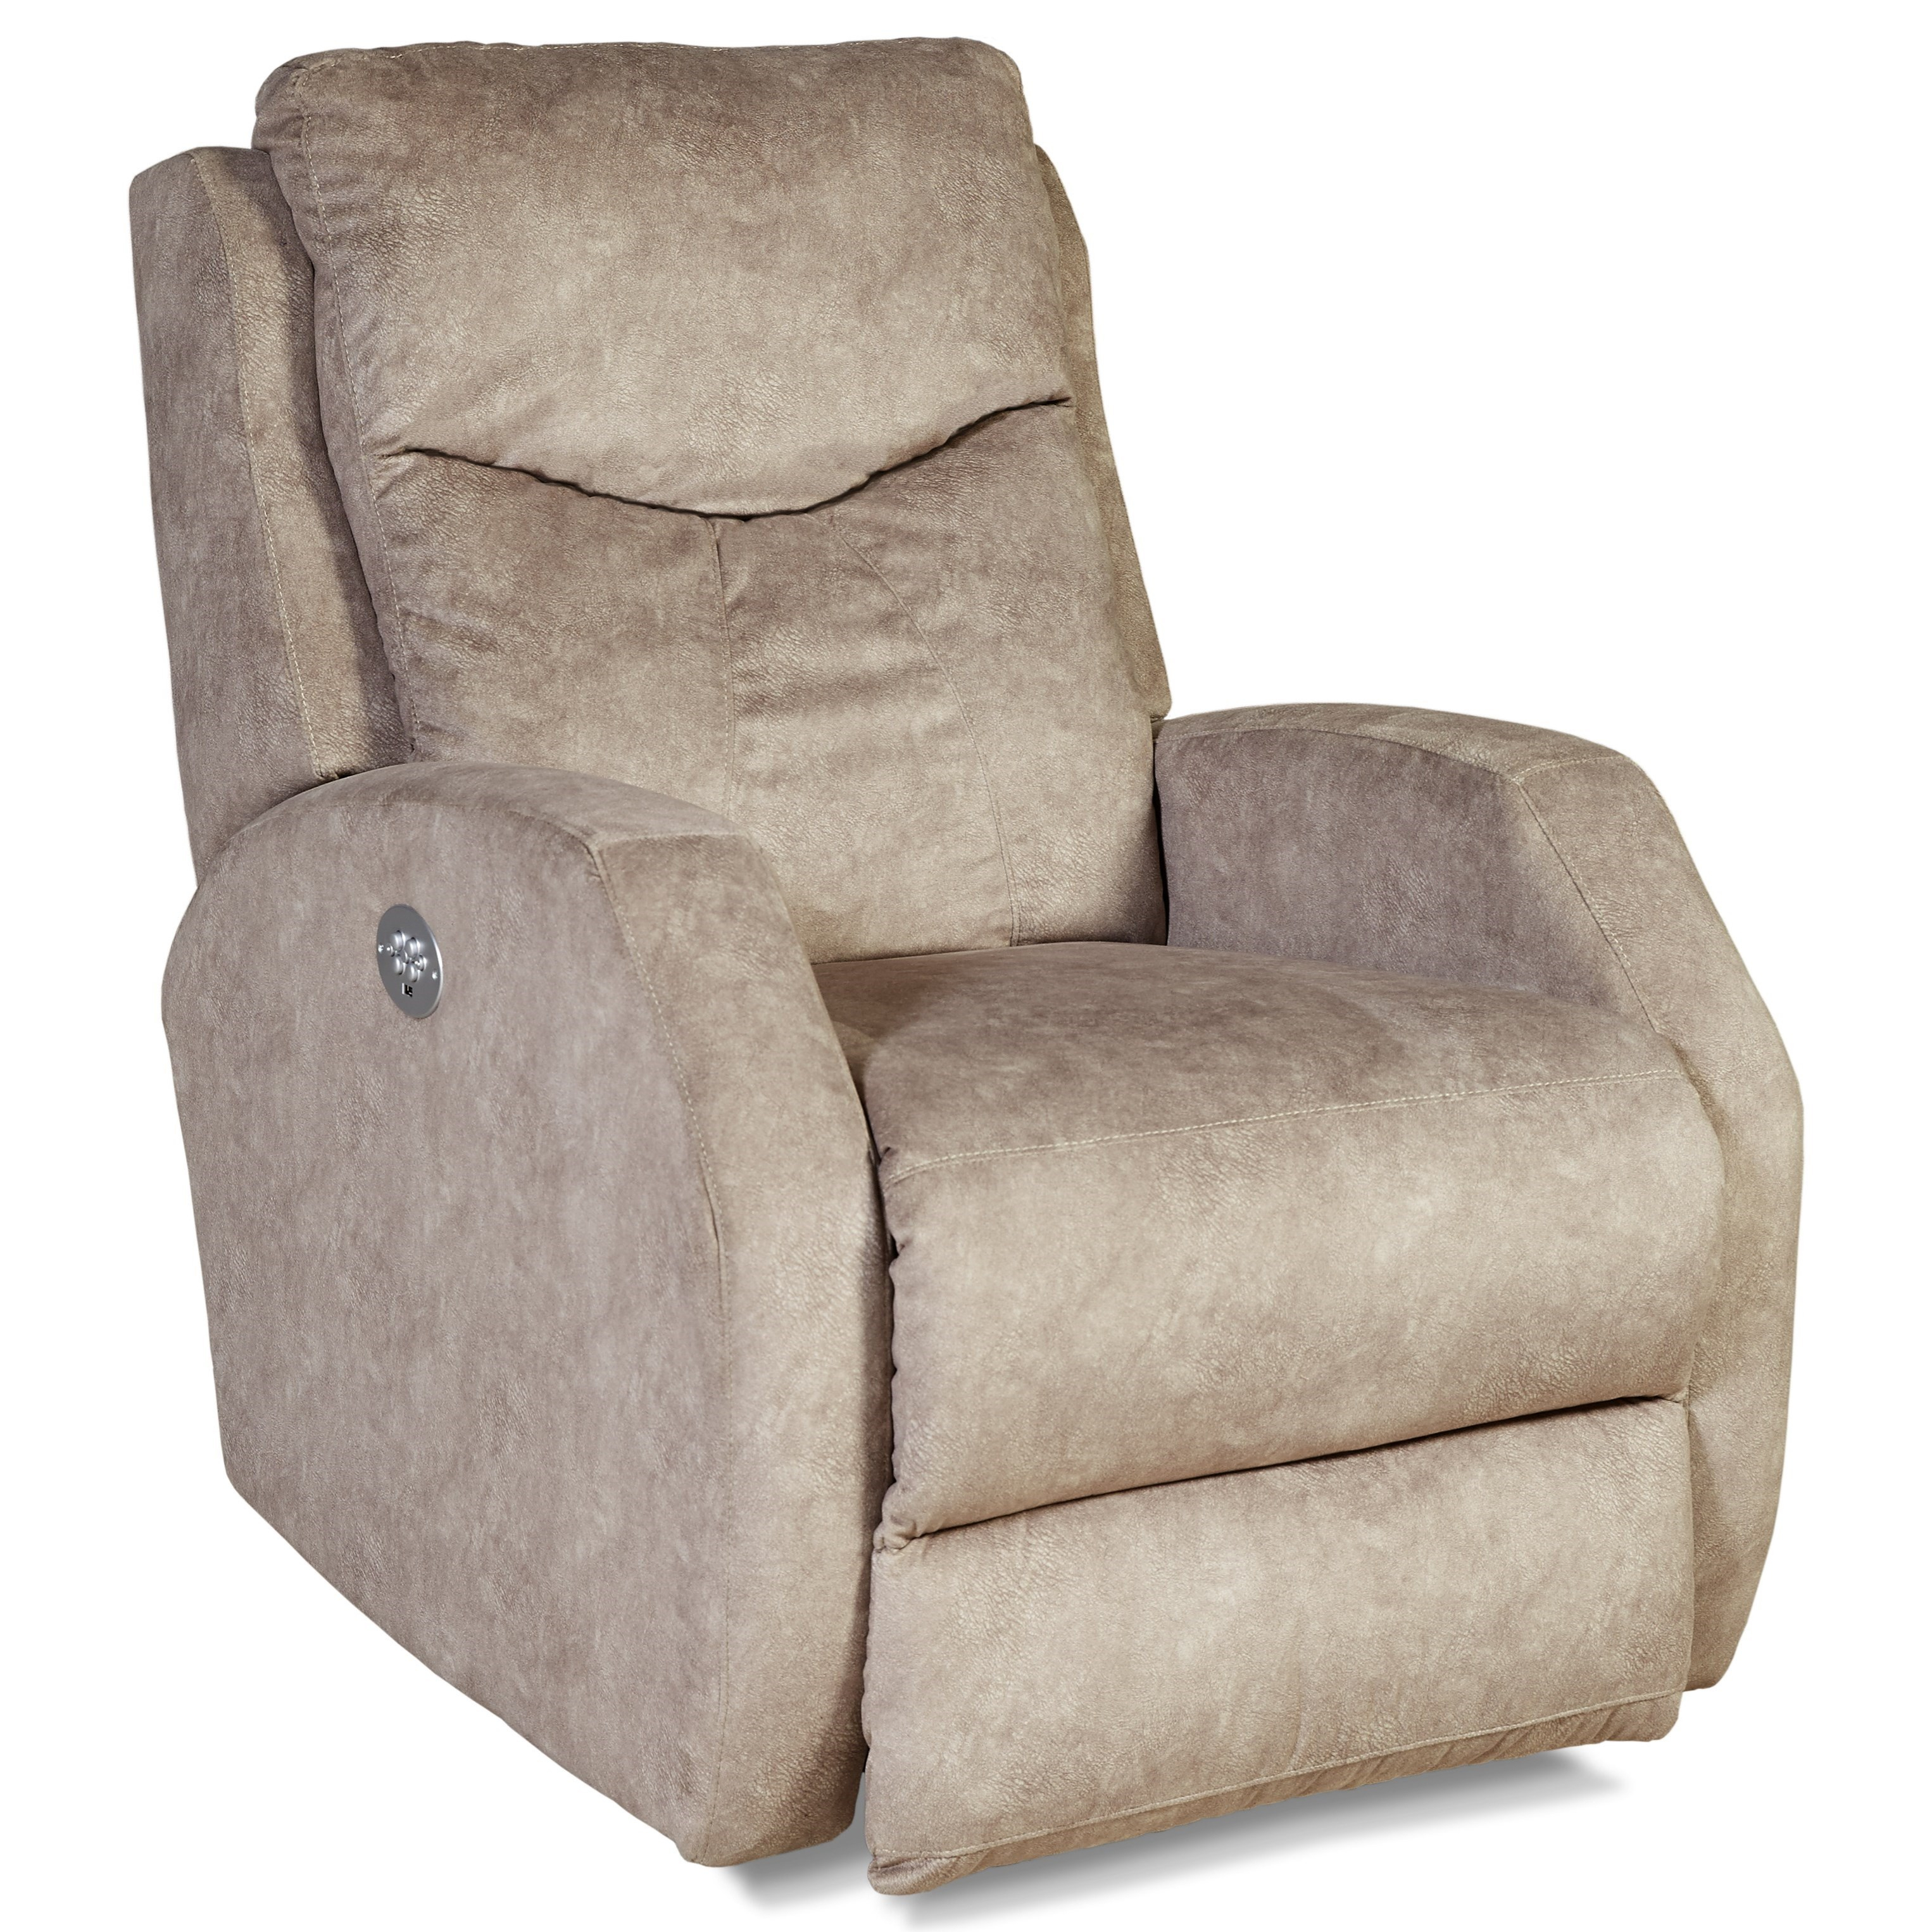 Southern Motion Recliners Tip Top Rocker Recliner | Lindy's Throughout Hercules Grey Swivel Glider Recliners (Image 20 of 20)